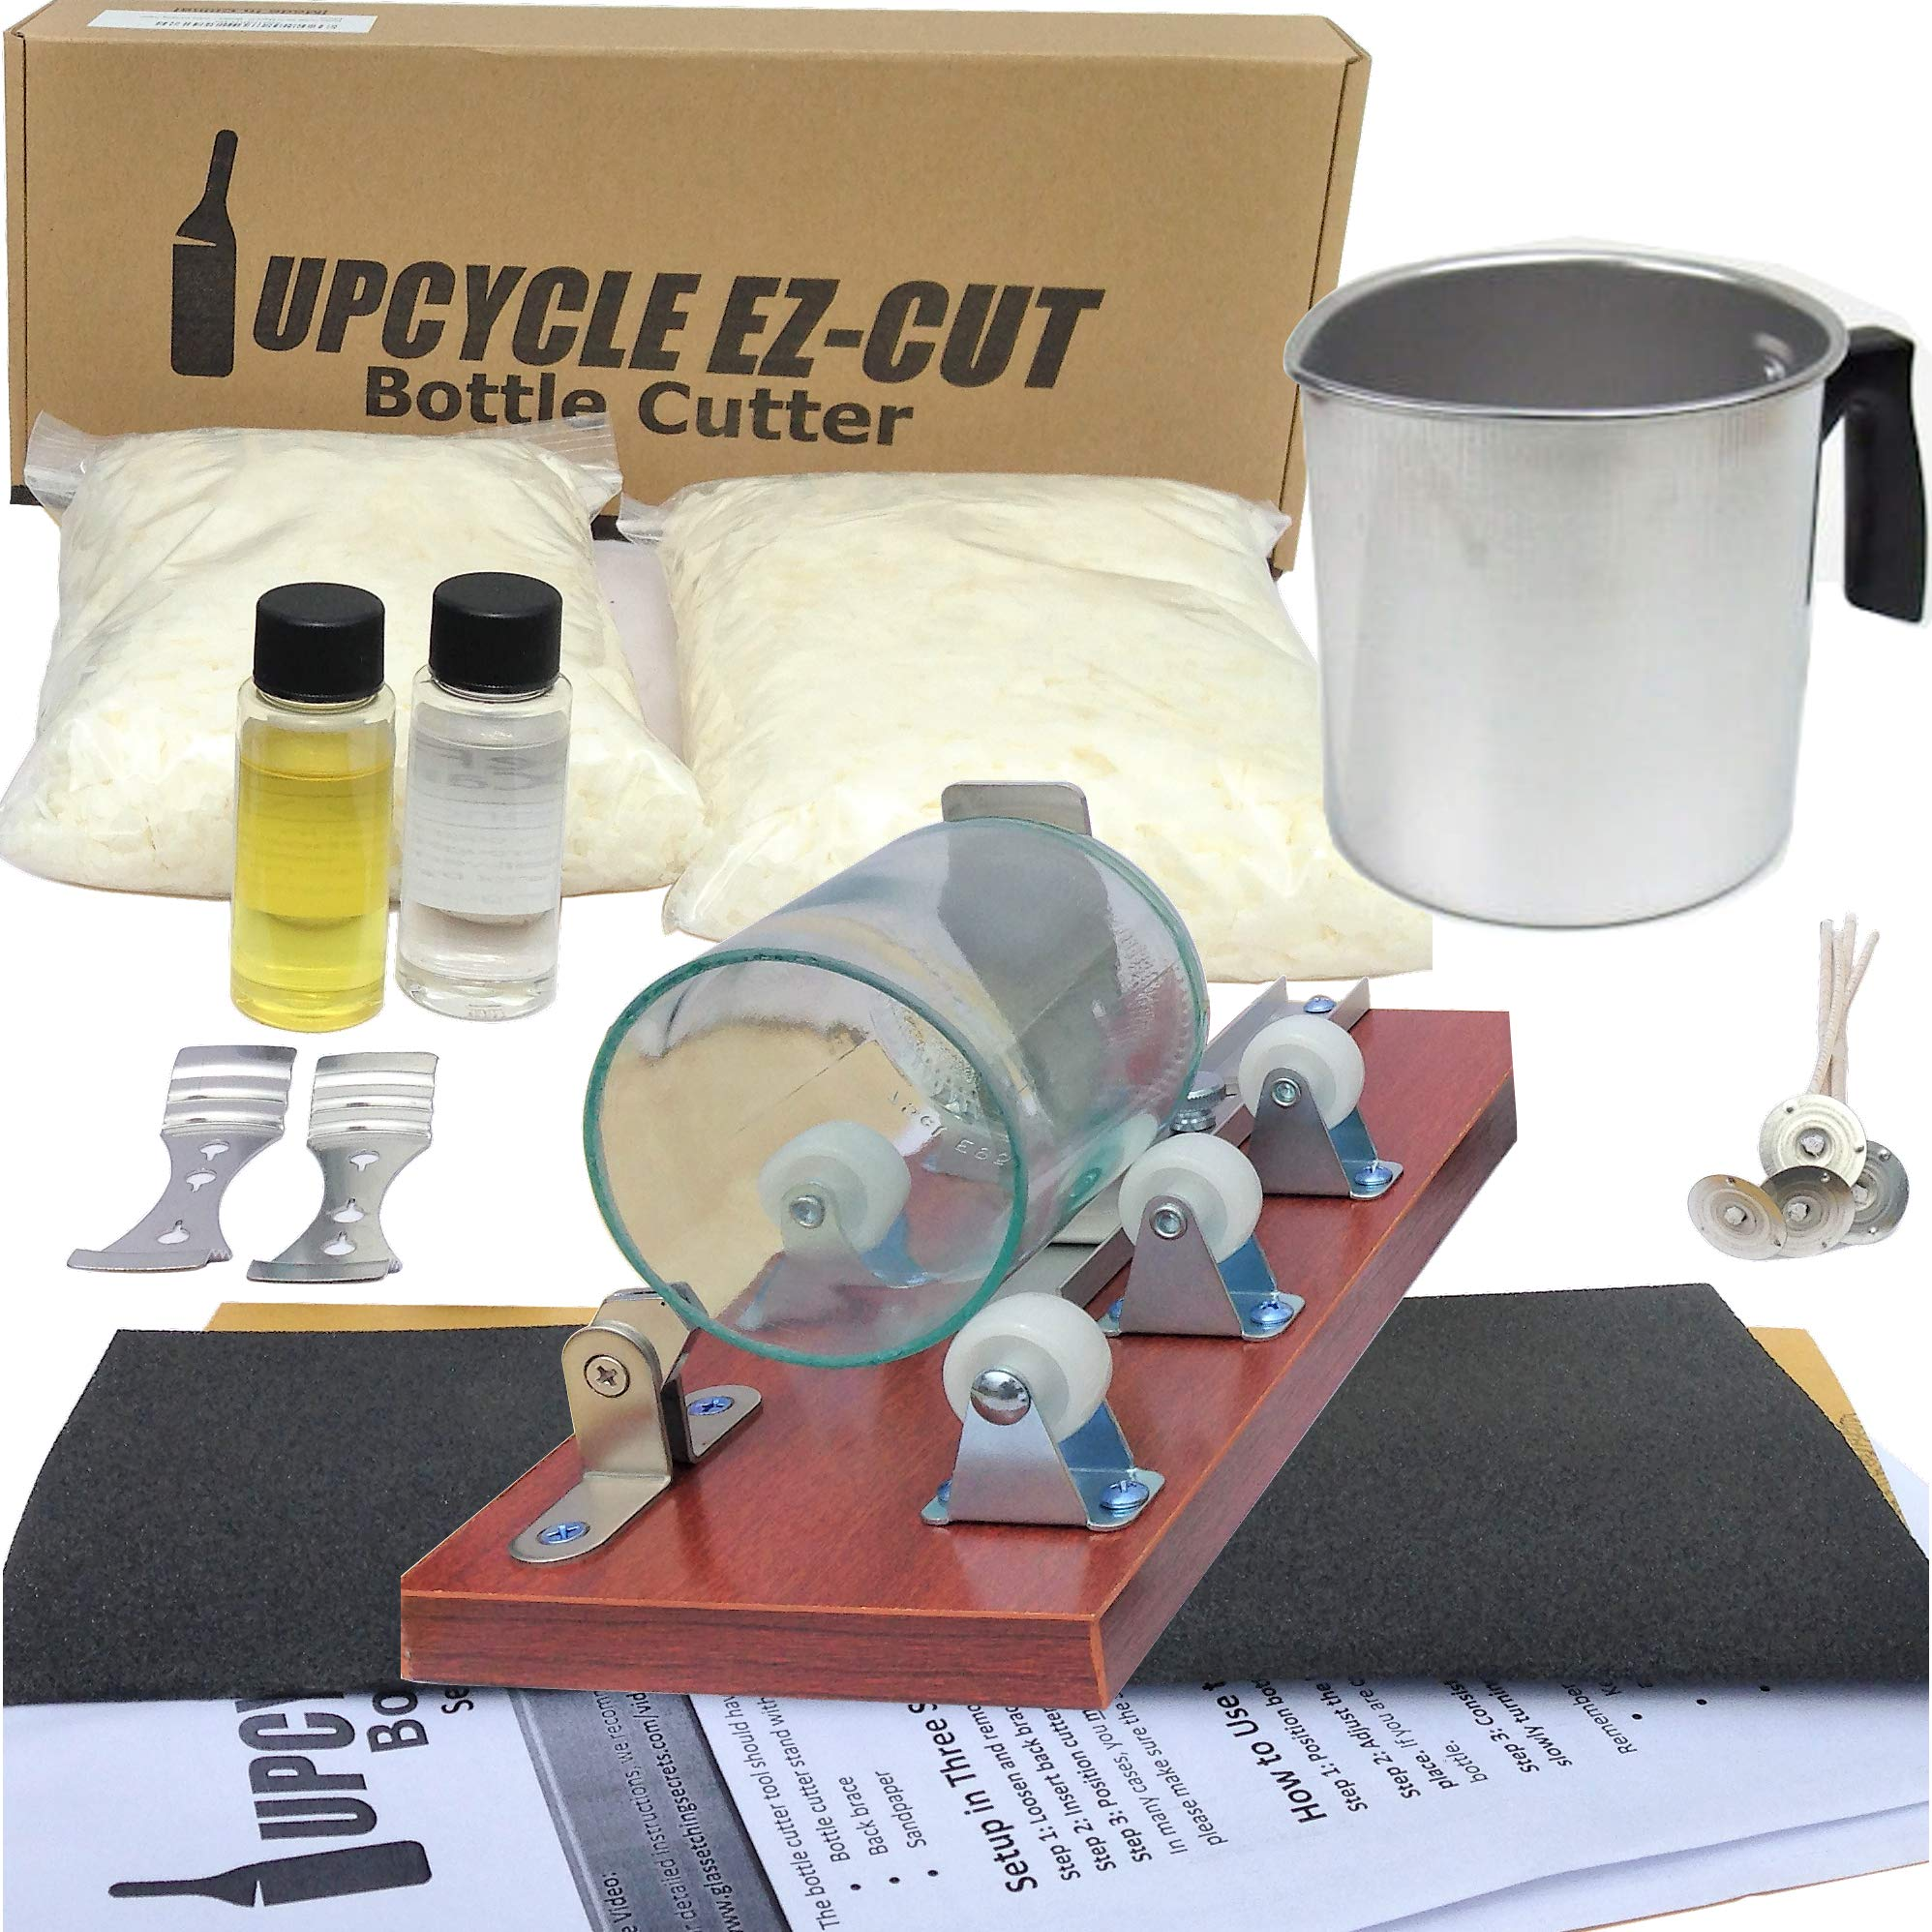 Deluxe Candle Making Kit & Supplies - with Glass Bottle Cutter to Make Candles Out of Wine Bottles - with 2 LB Soy Wax, 2 Scents, Wicks + Holders & Pitcher